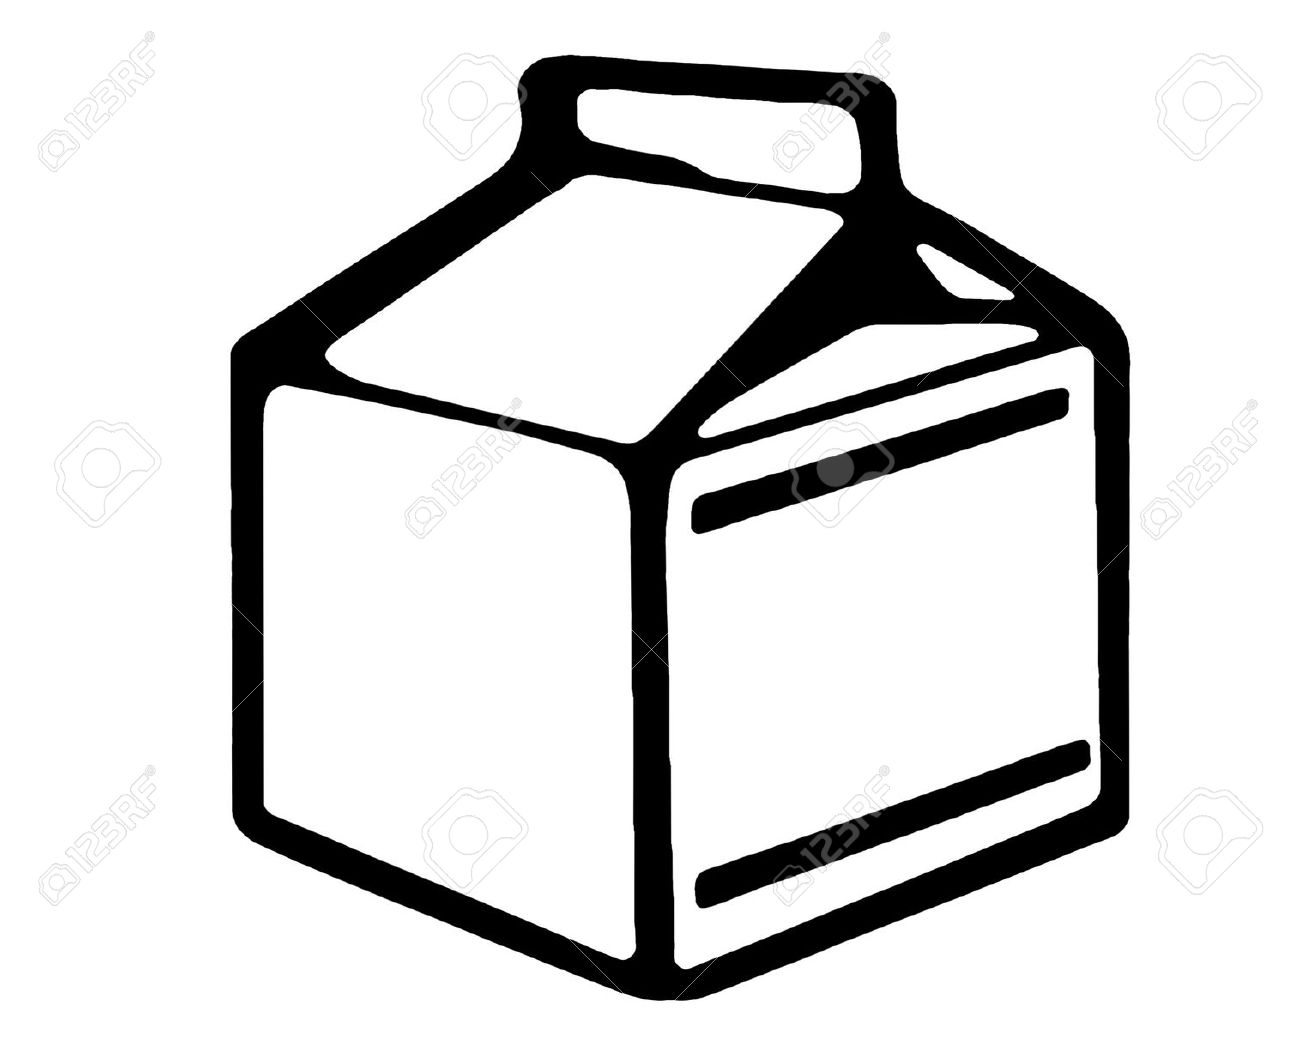 Carton Clipart Black And White.